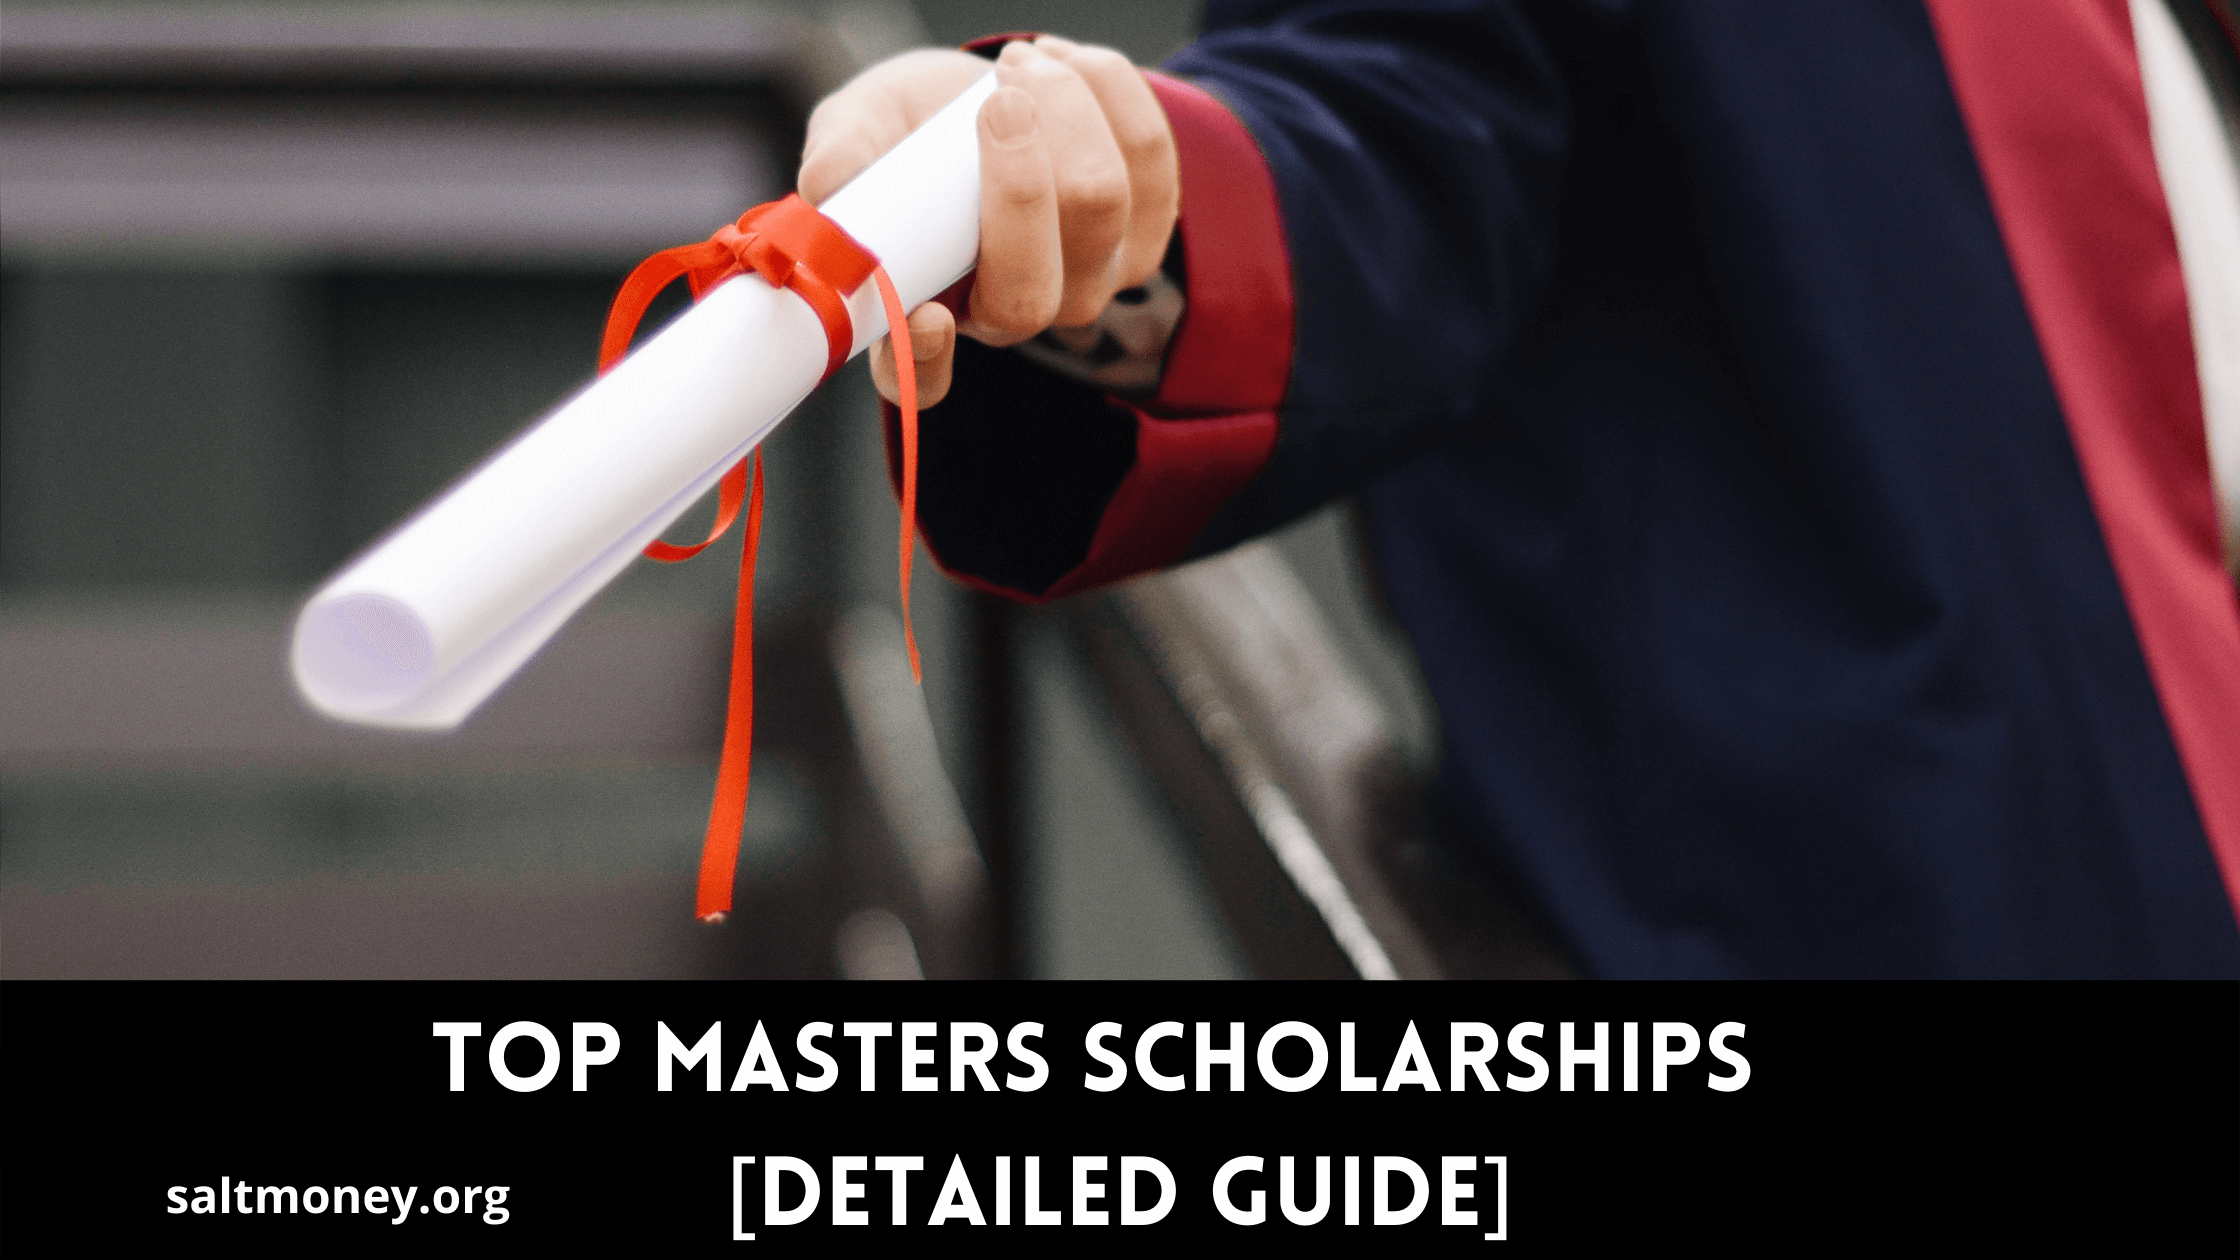 Top Masters Scholarships